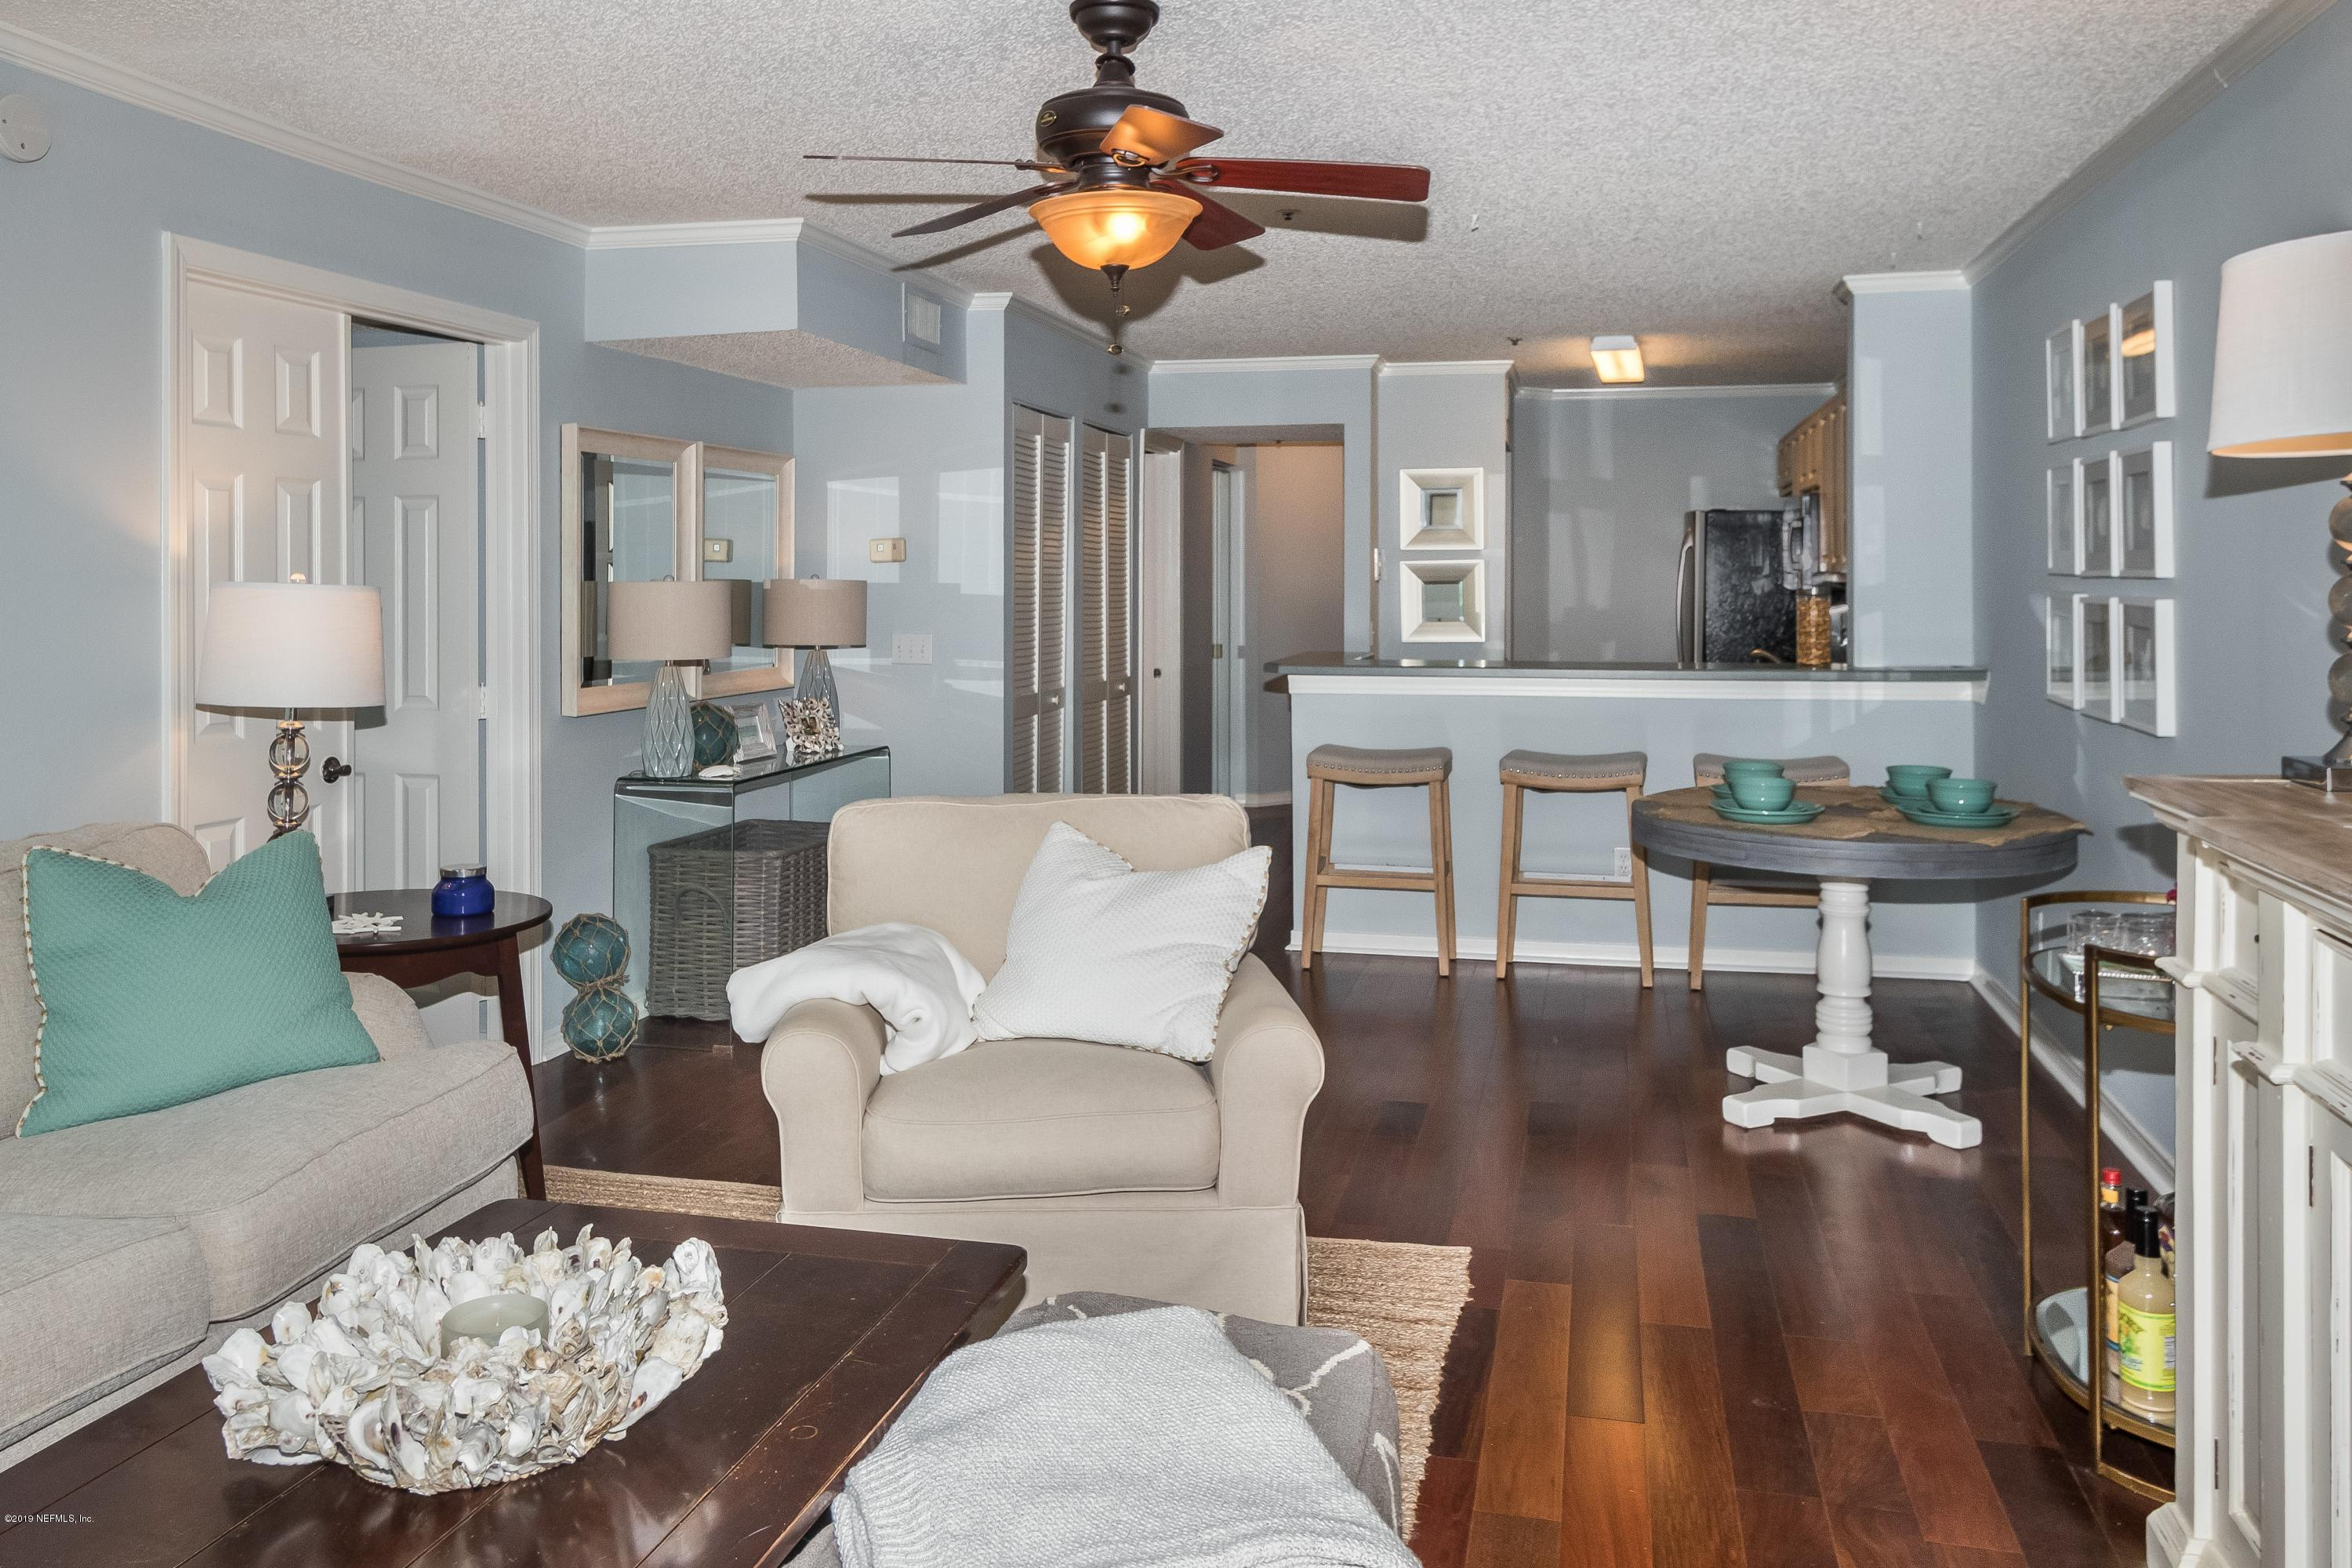 110 OCEAN HOLLOW, ST AUGUSTINE, FLORIDA 32084, 2 Bedrooms Bedrooms, ,2 BathroomsBathrooms,Residential - condos/townhomes,For sale,OCEAN HOLLOW,975100